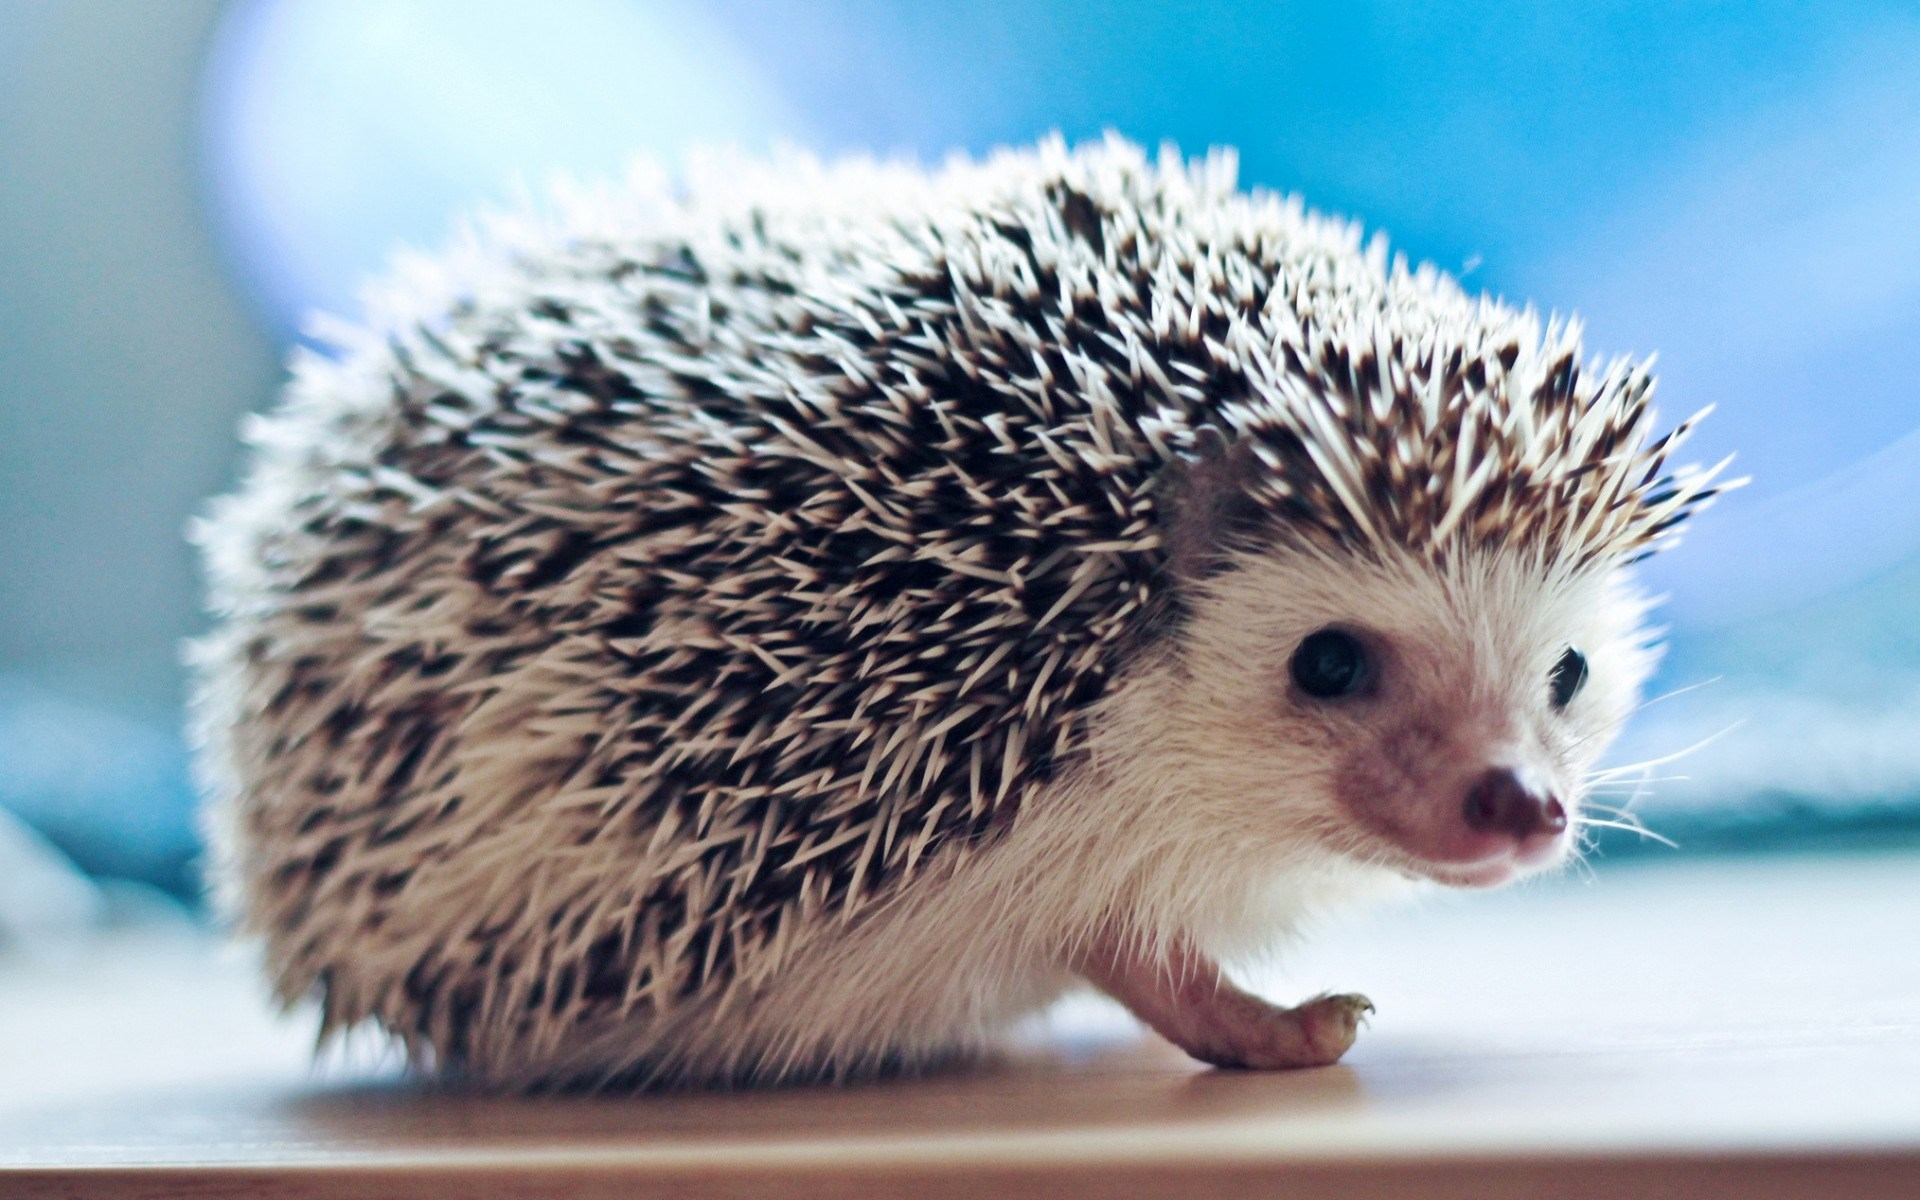 hedgehog wallpaper